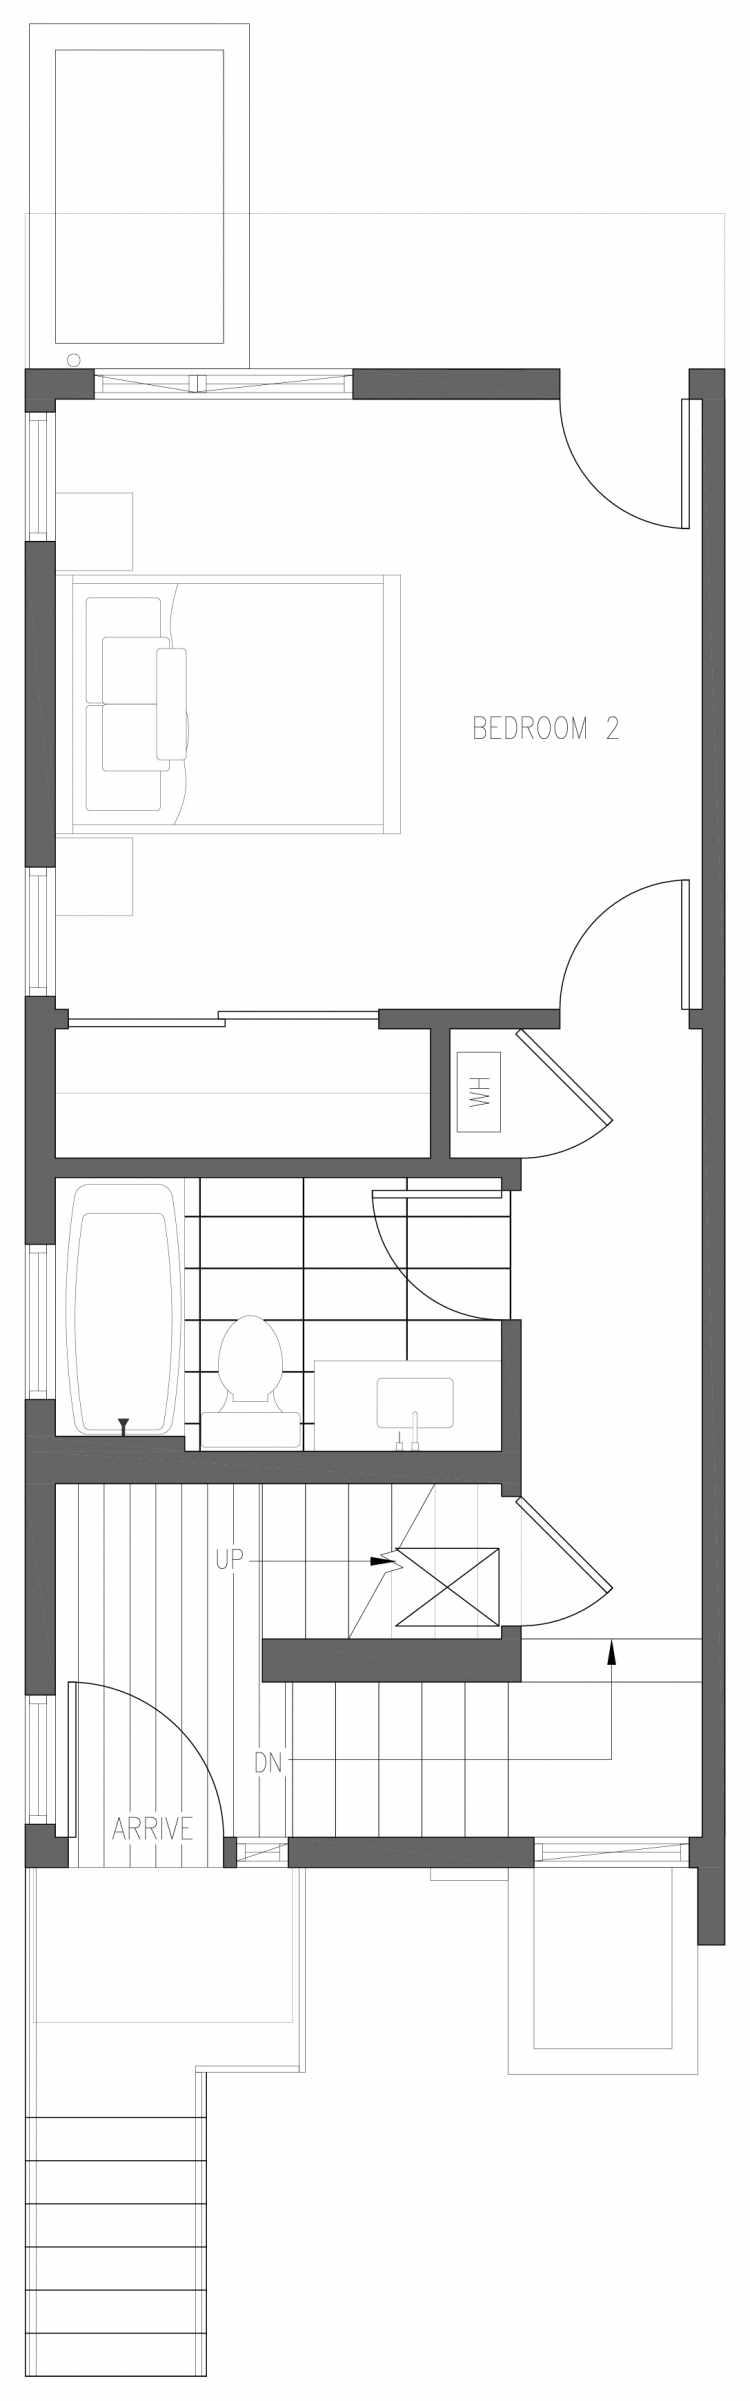 First Floor Plan of 6411 14th Ave NW, One of the Oleana Townhomes in Ballard by Isola Homes